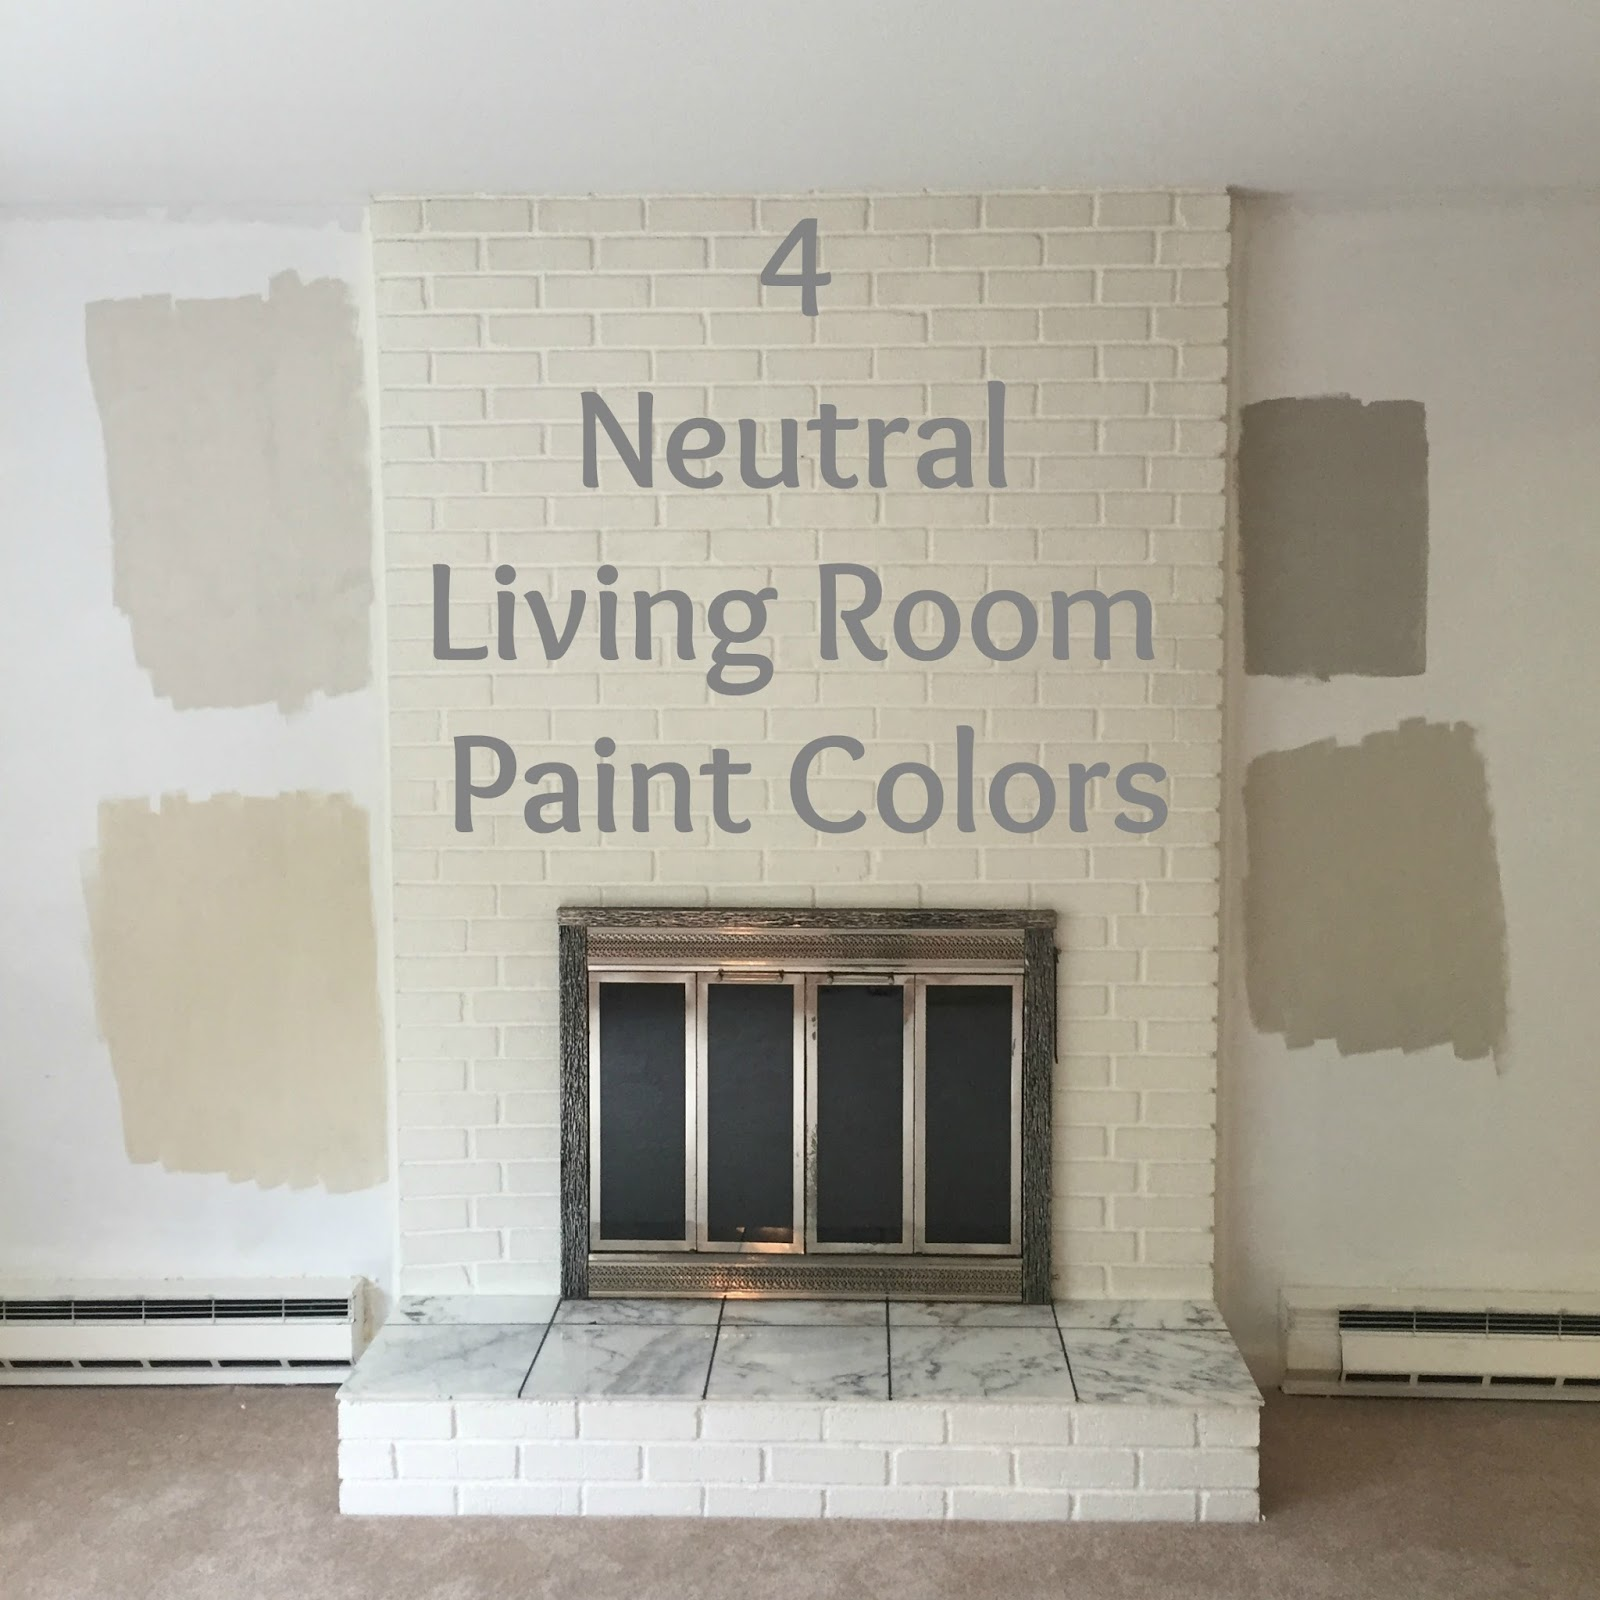 living room paint samples. Saturday  July 2 2016 Drew Danielle Design 4 Neutral Living Room Paint Colors